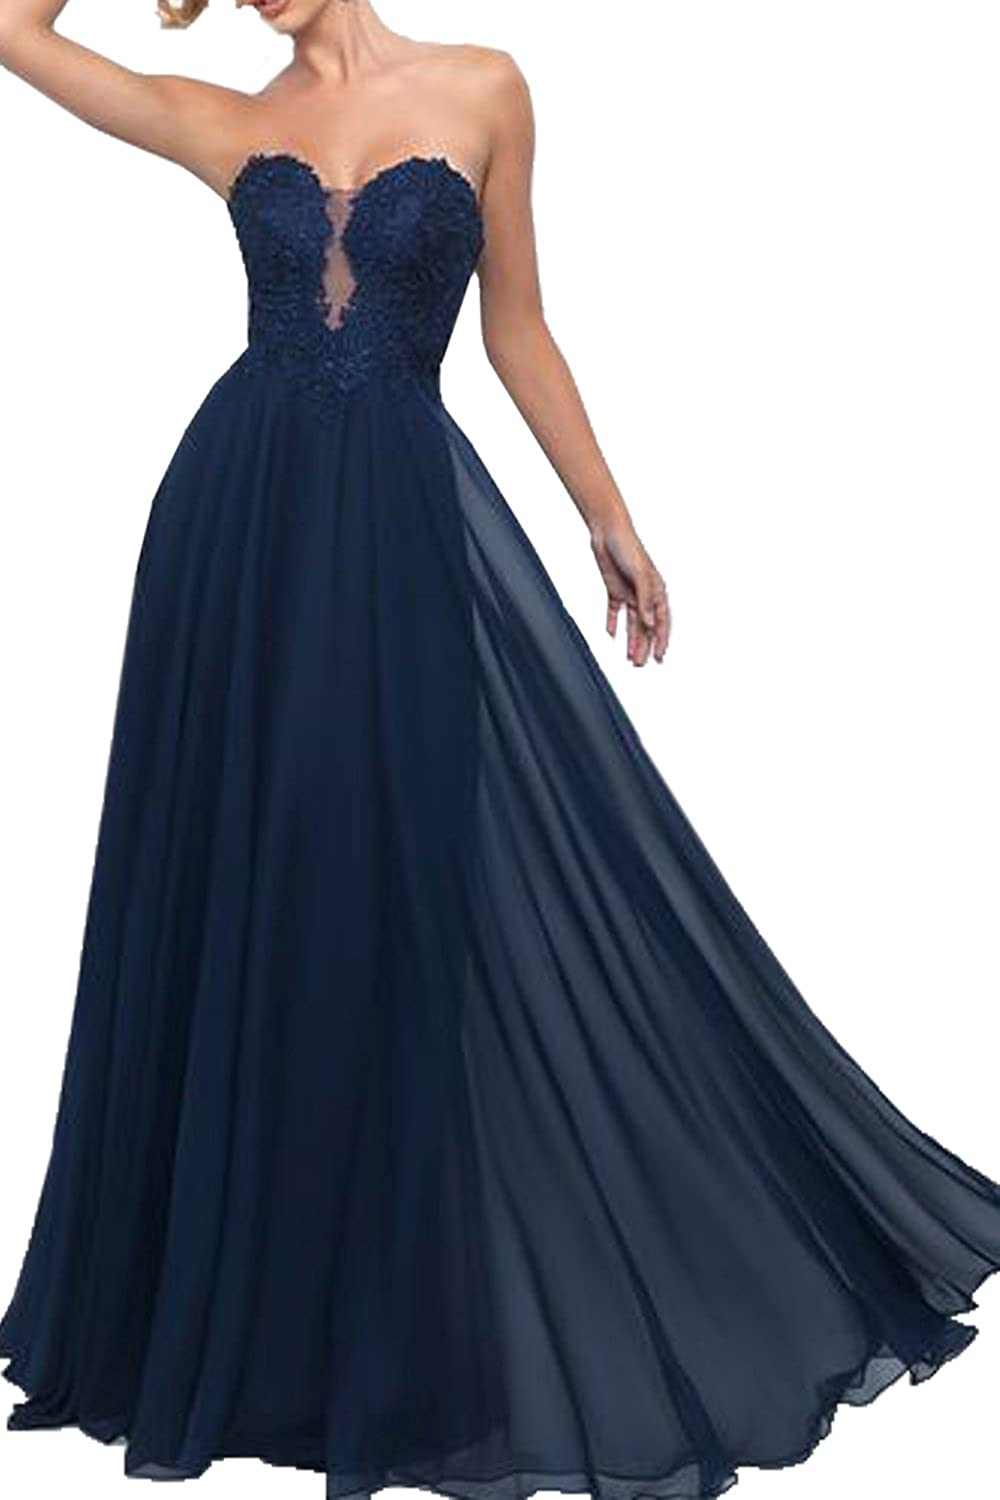 Honey Qiao Sweetheart Navy Prom Dresses Long Sheer Lace Evening Party Gowns